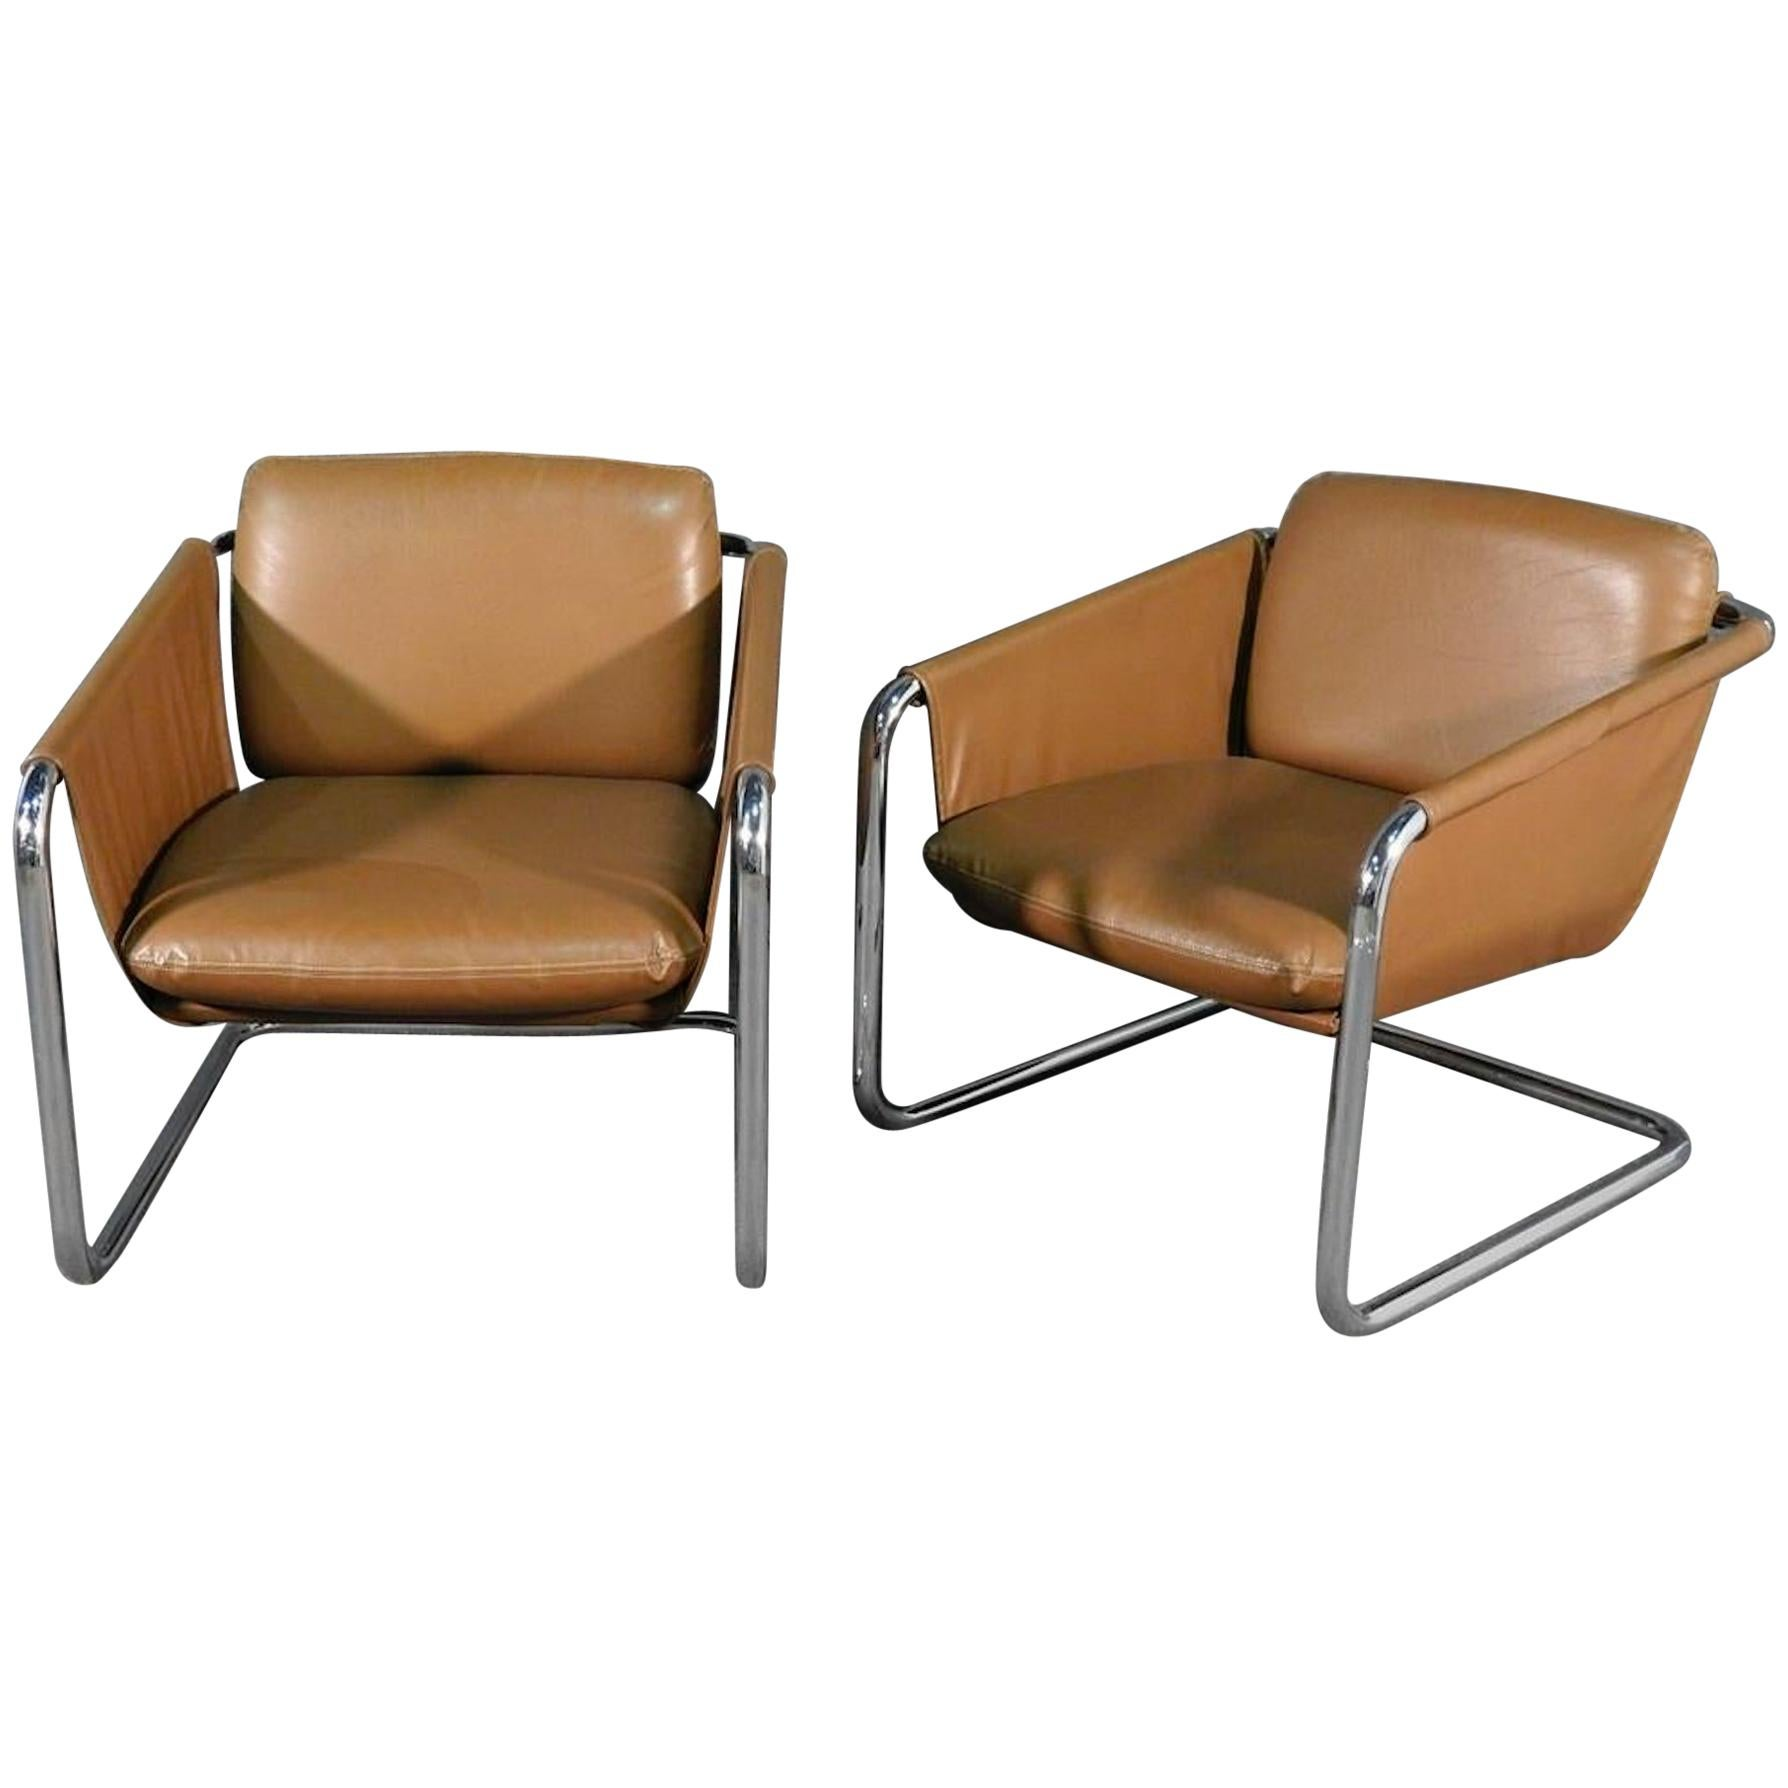 Pair of Midcentury Chairs by Thonet